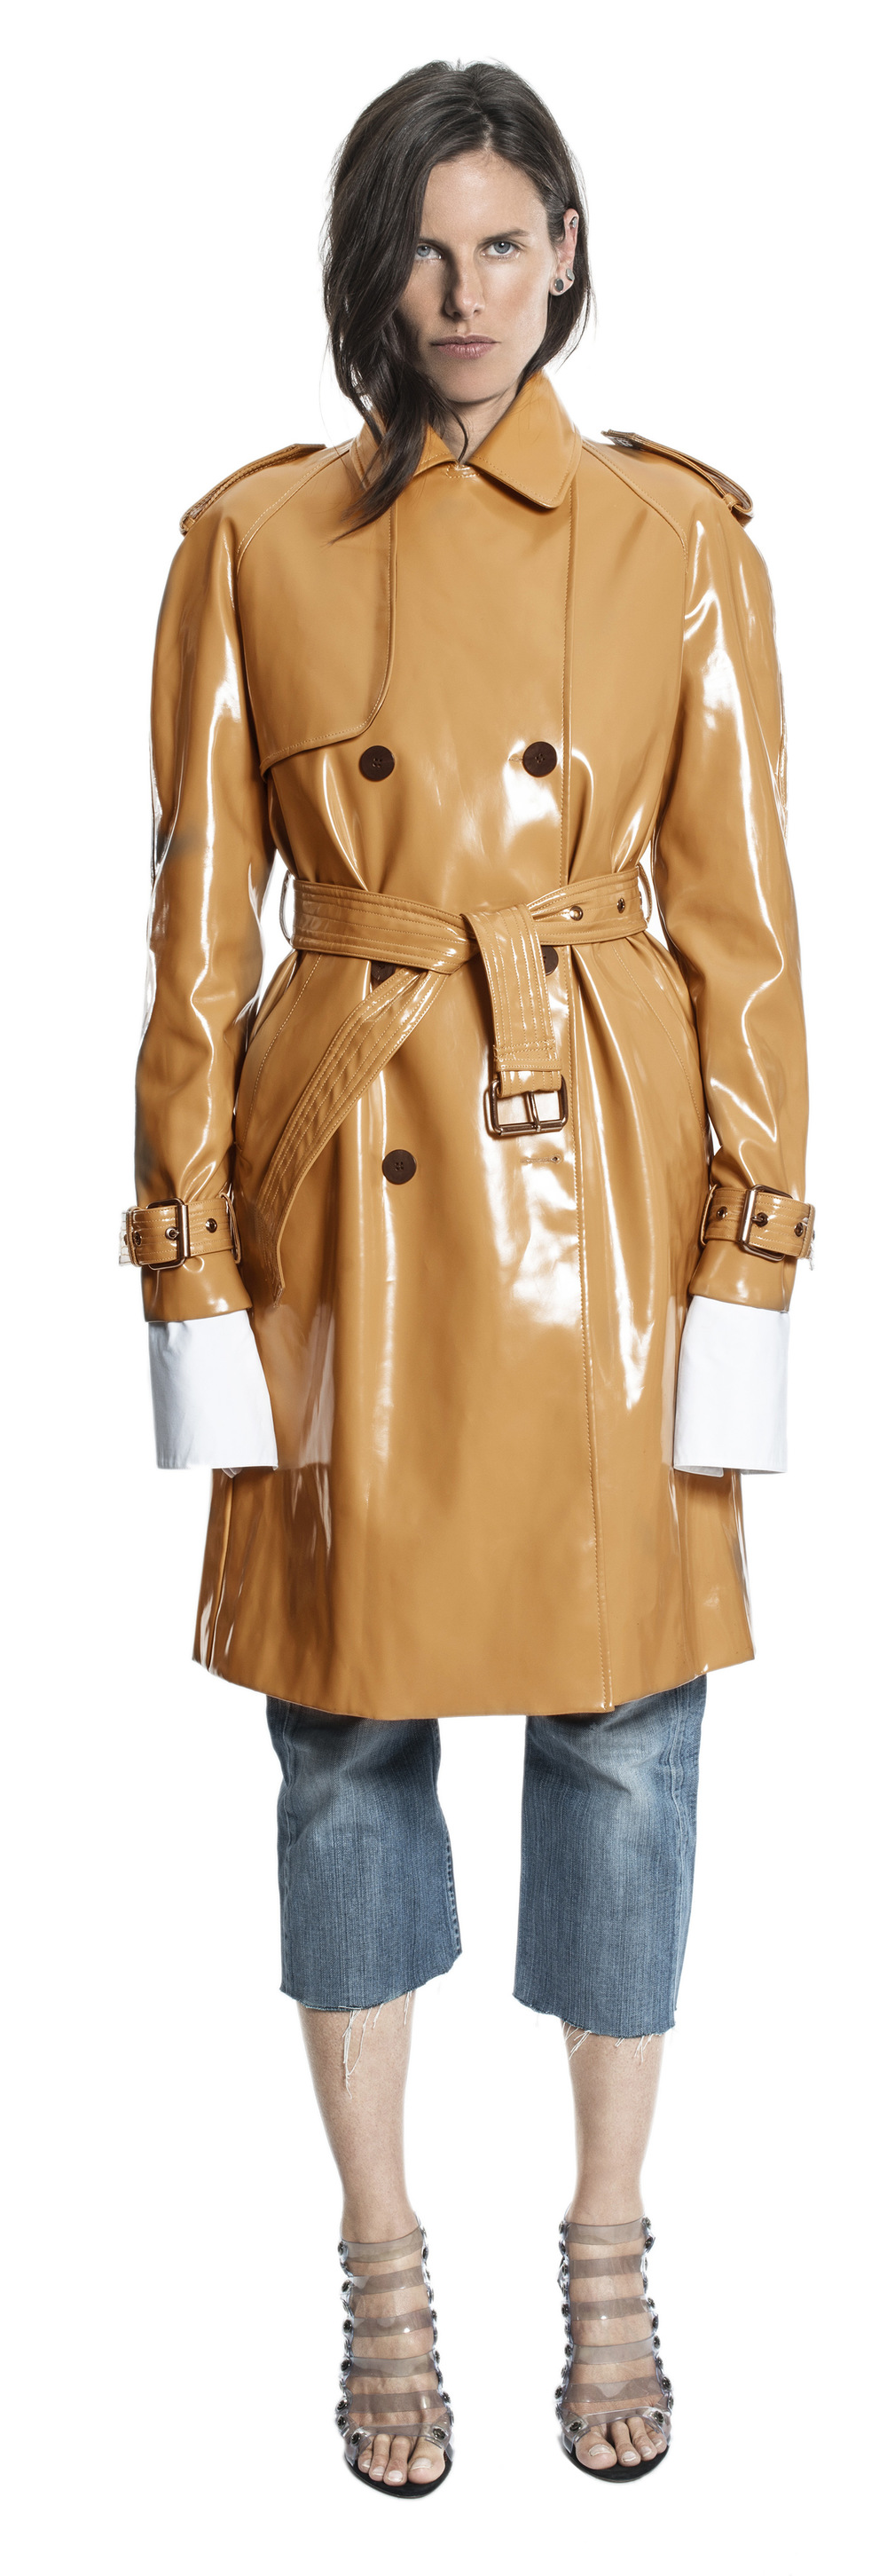 sure, this bomb ass coat is $812 USD but quality over quantity! sometimes.